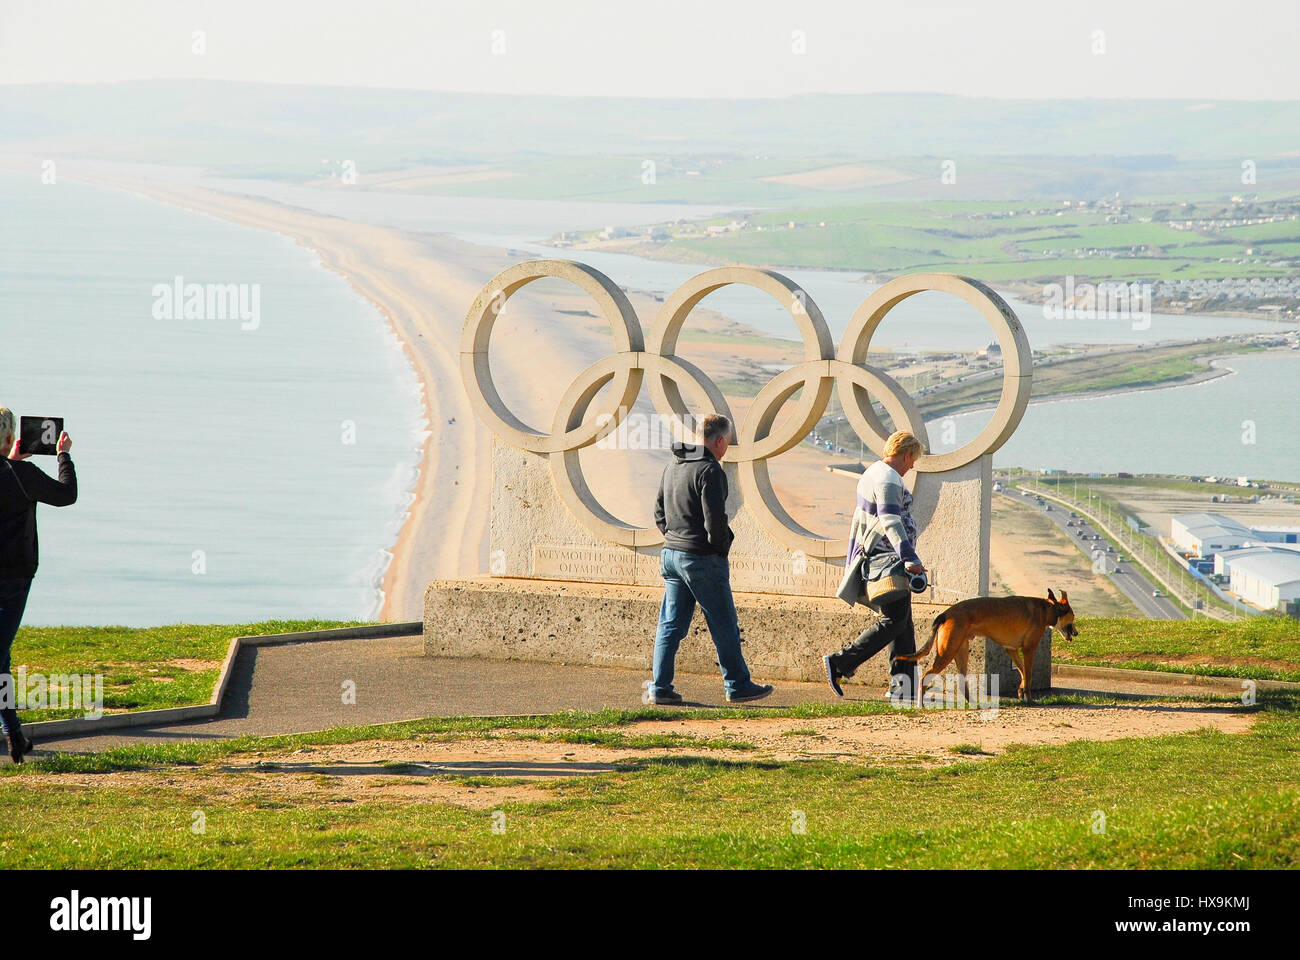 Portland, Dorset, UK. 25th Mar, 2017. People enjoy a very warm day, high above Chesil Beach, on the Isle of Portland. - Stock Image